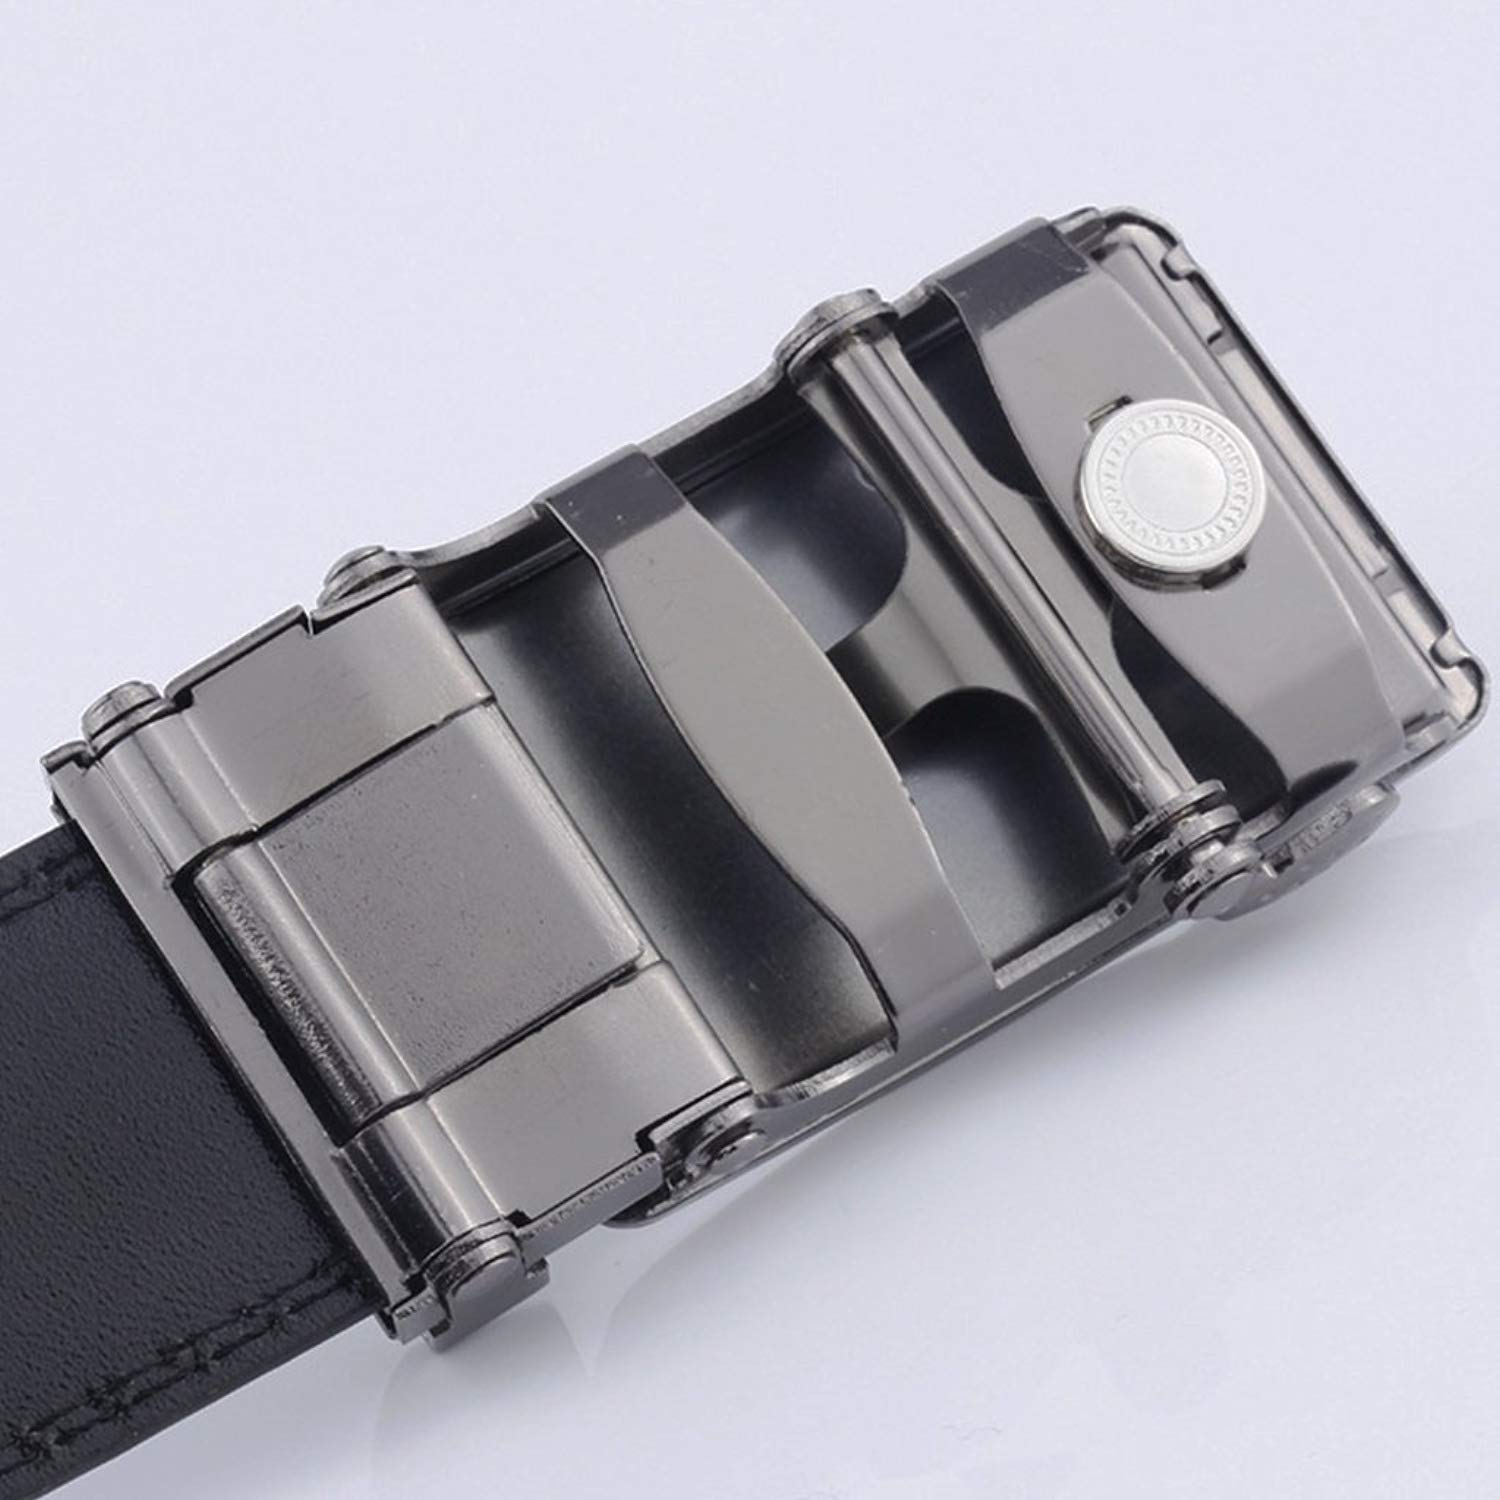 Tcplyn Durable Men Casual Belt Business Belt Artificial Leather Belt with Automatic Buckle Best Gift for Friends Families 1pcs Black